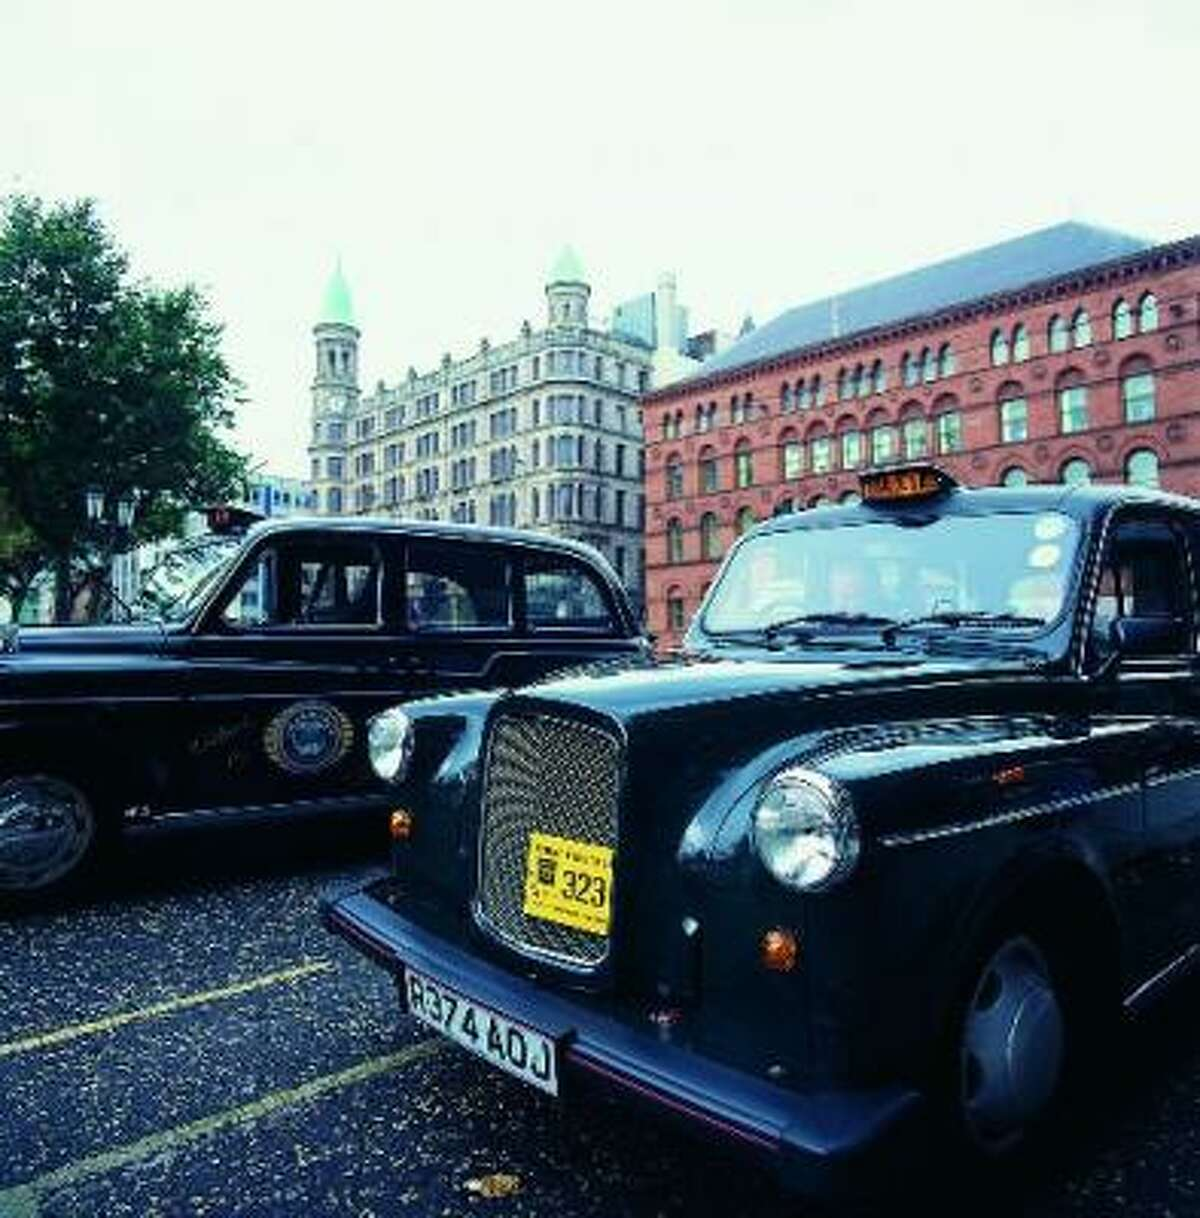 The Black Taxis of Belfast, now mostly devoted to tourism, grew out of a serious local need. During the height of The Troubles, safe passage had to be arranged via taxi, and the taxi drivers themselves could only operate within, never across, each neighborhood's boundaries.